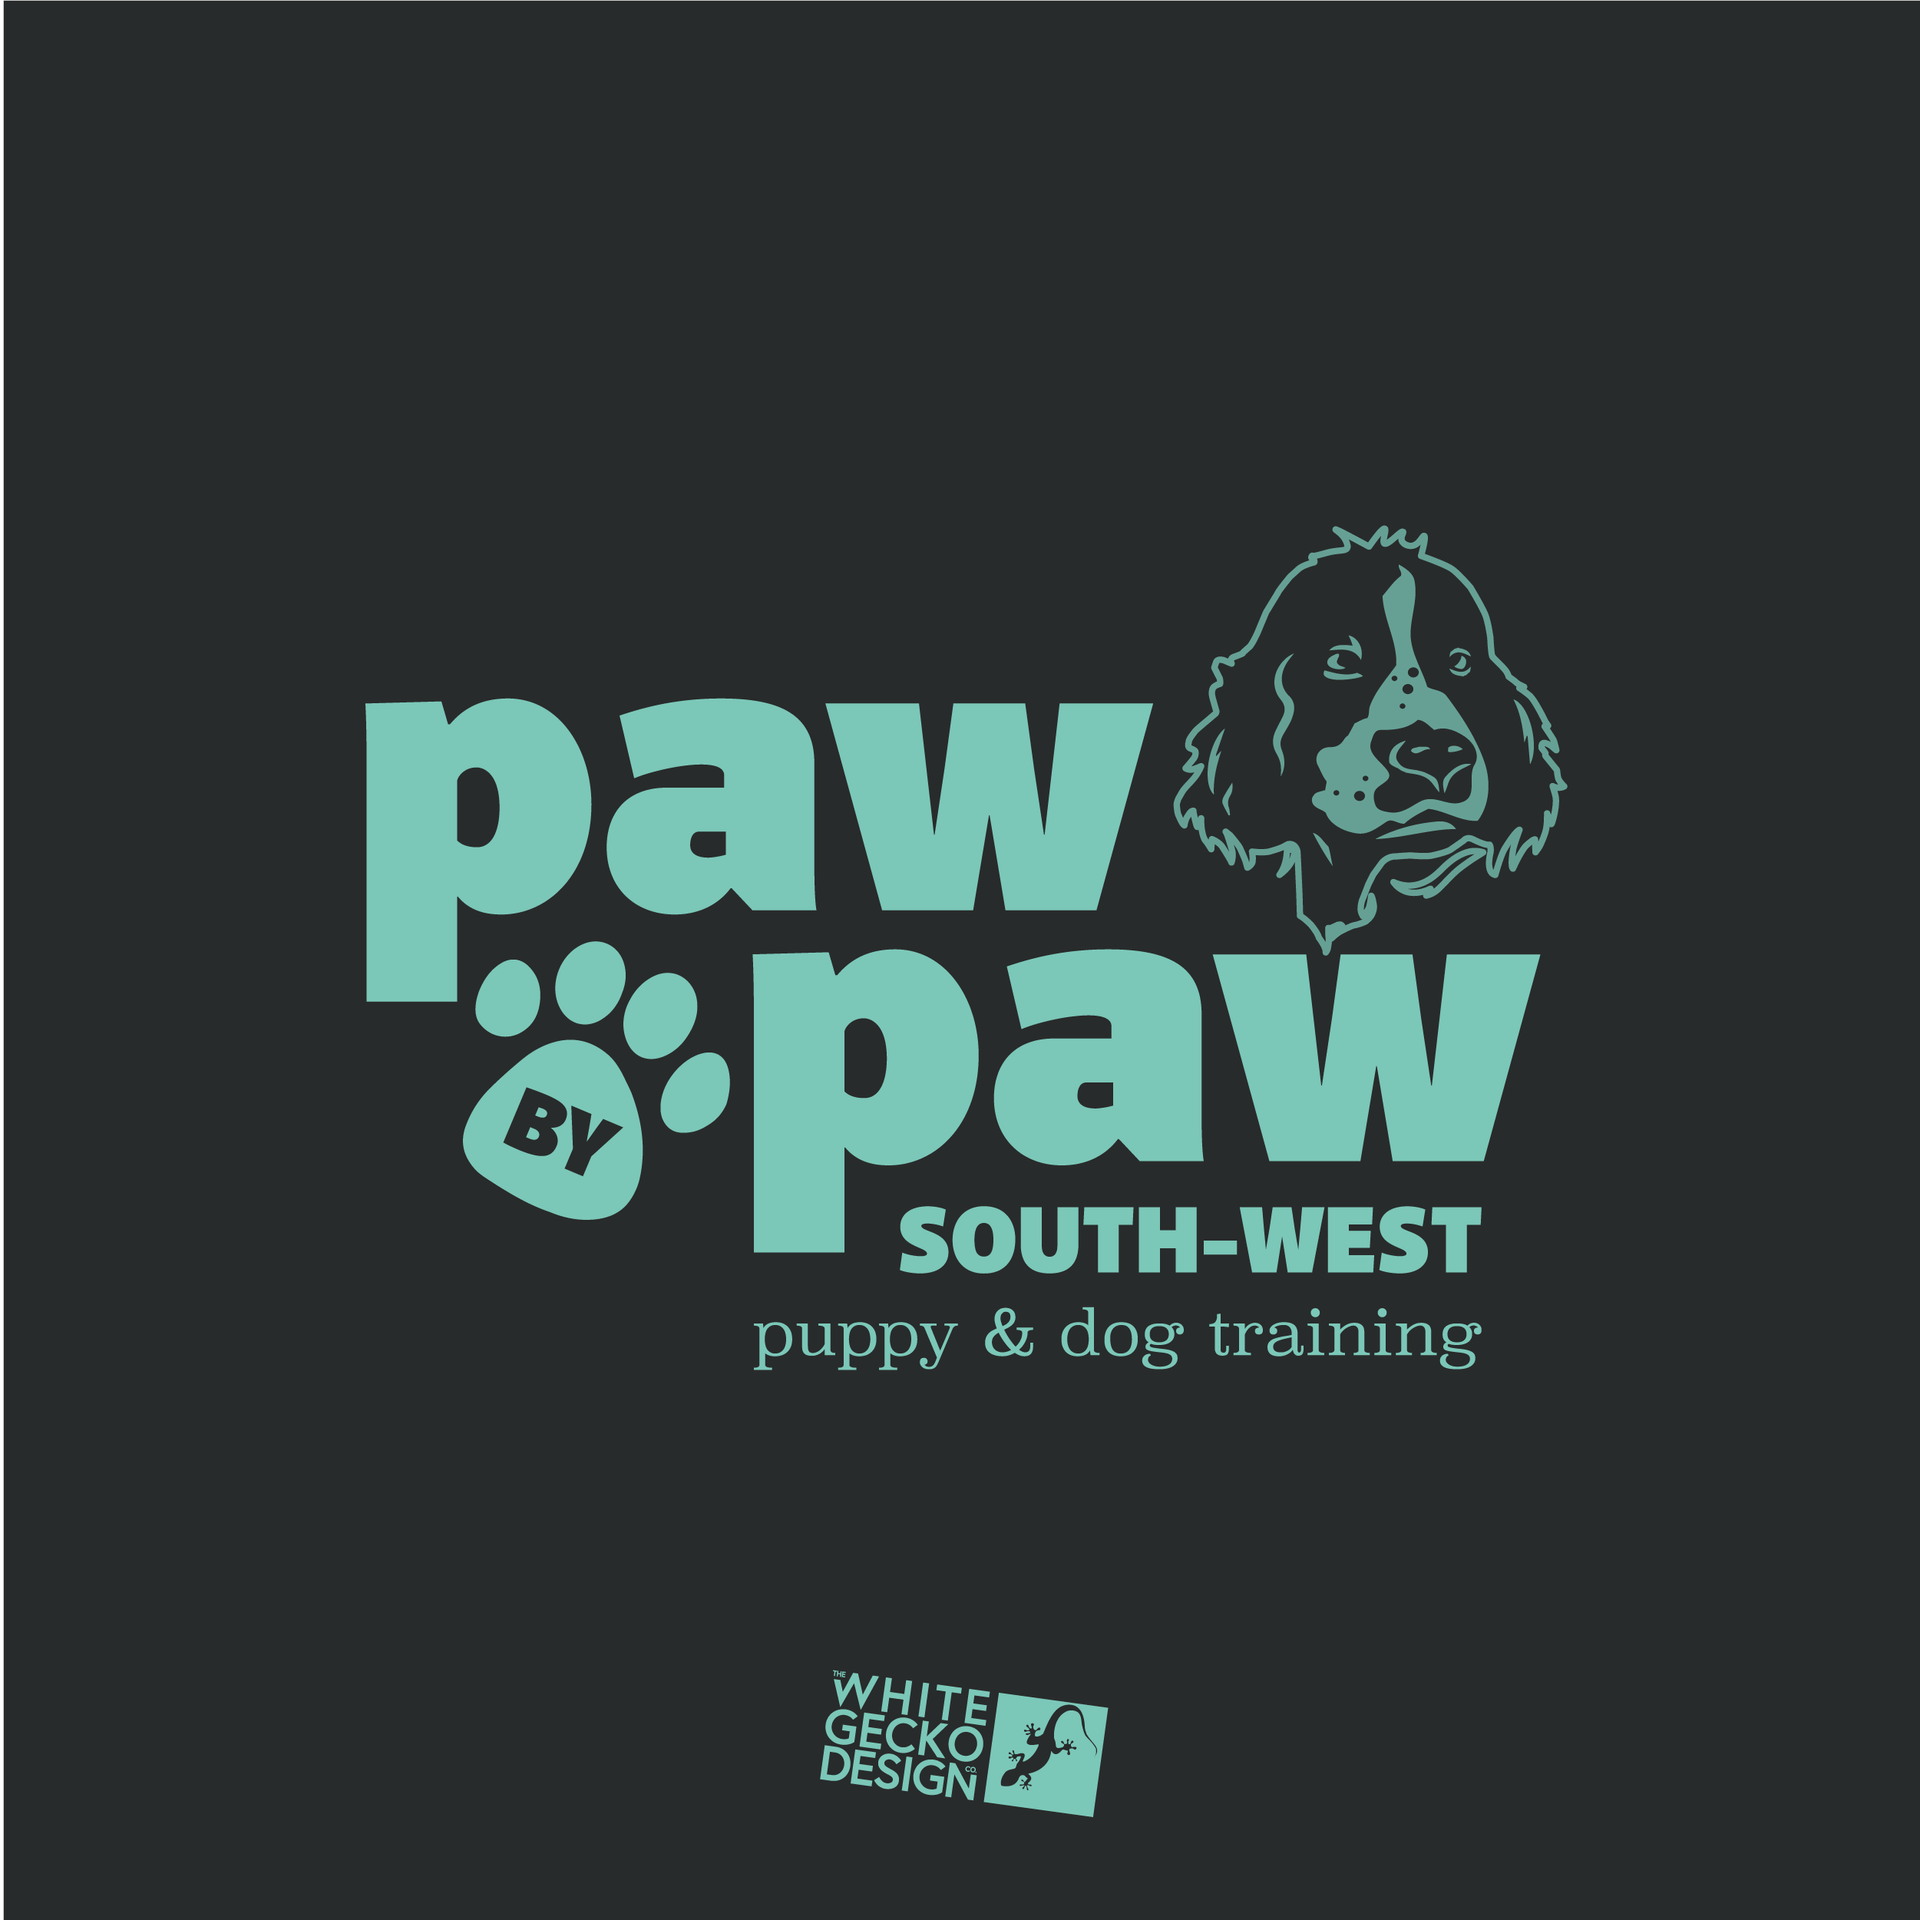 Paw by Paw-01.png